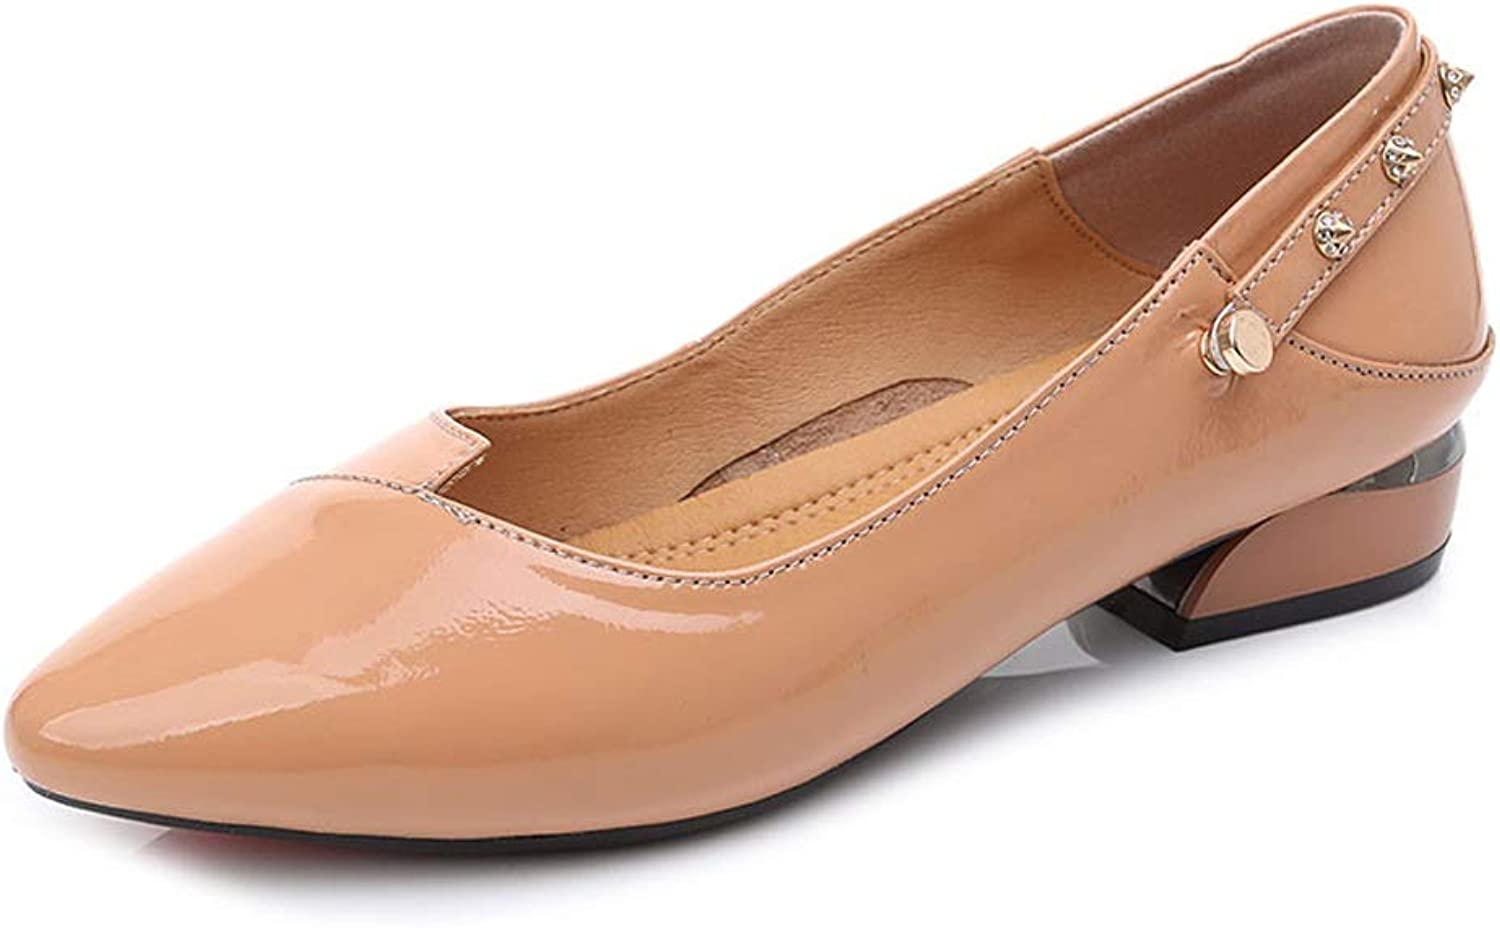 LANSEL Single shoes Female Spring and Autumn Thick with Shallow Mouth Korean Version of The Wild Women's Small shoes